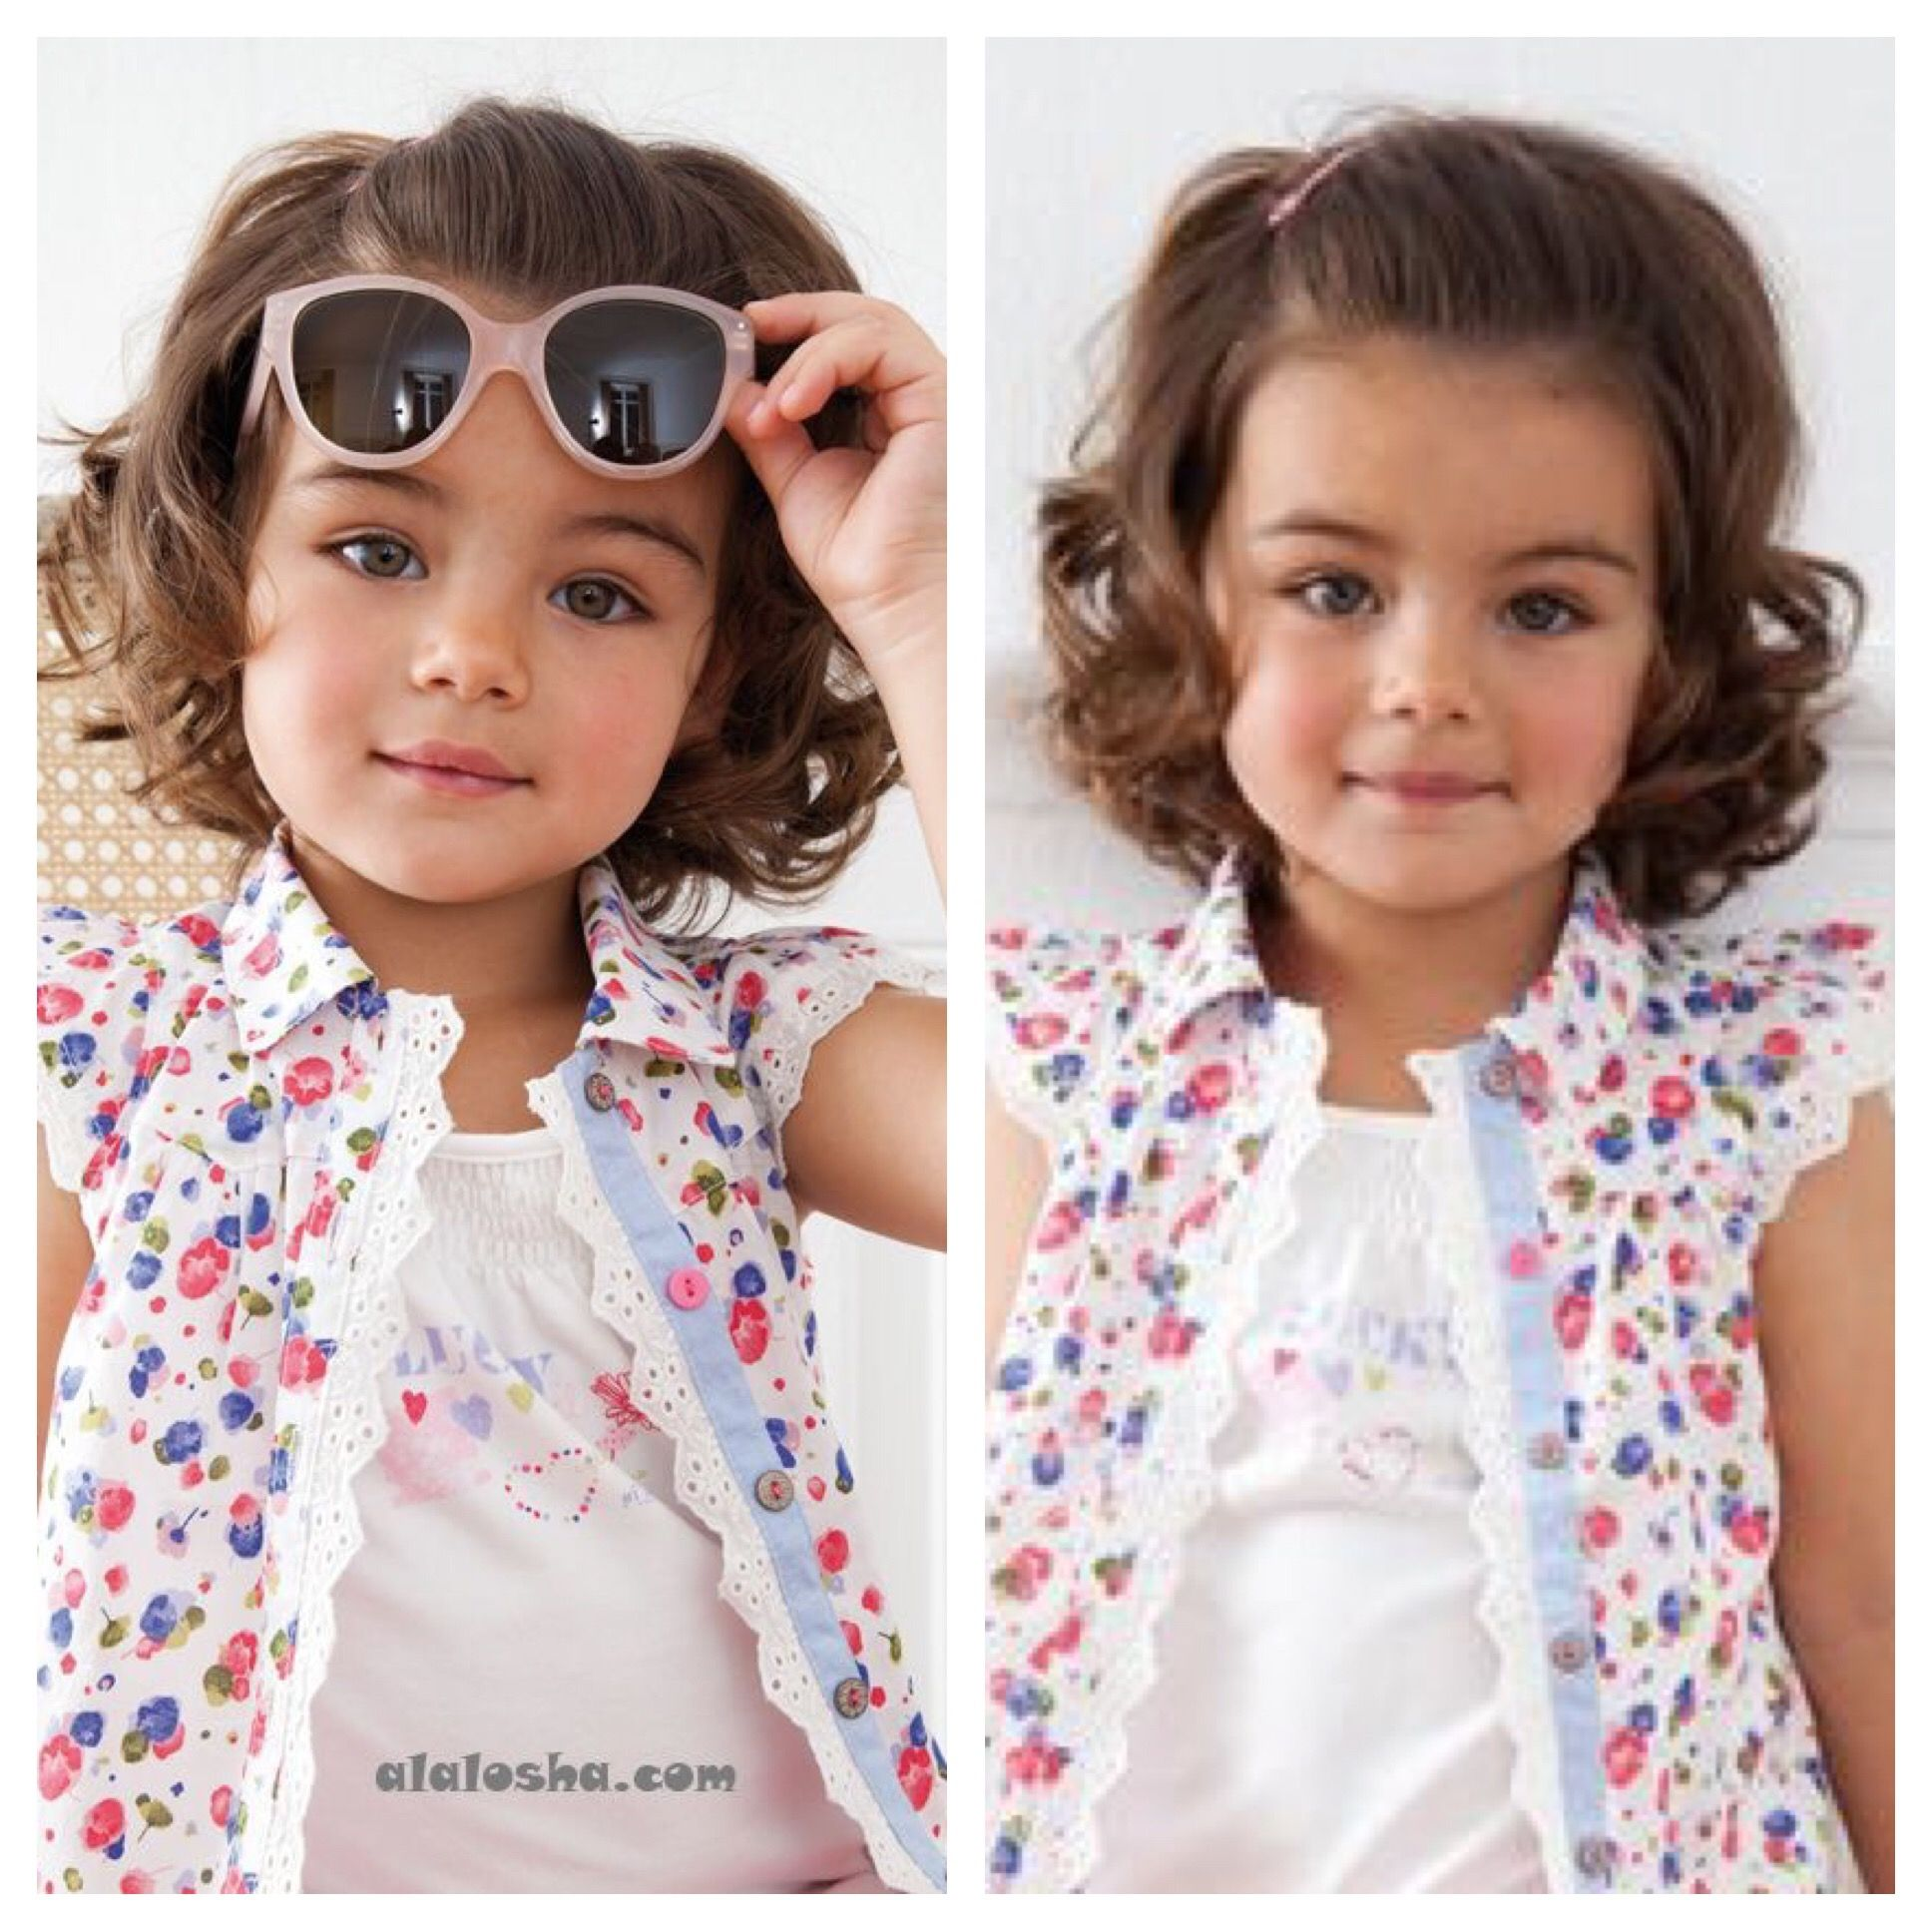 Hair Styles For Toddlers With Curly Hair Toddler Hairstyles Girl